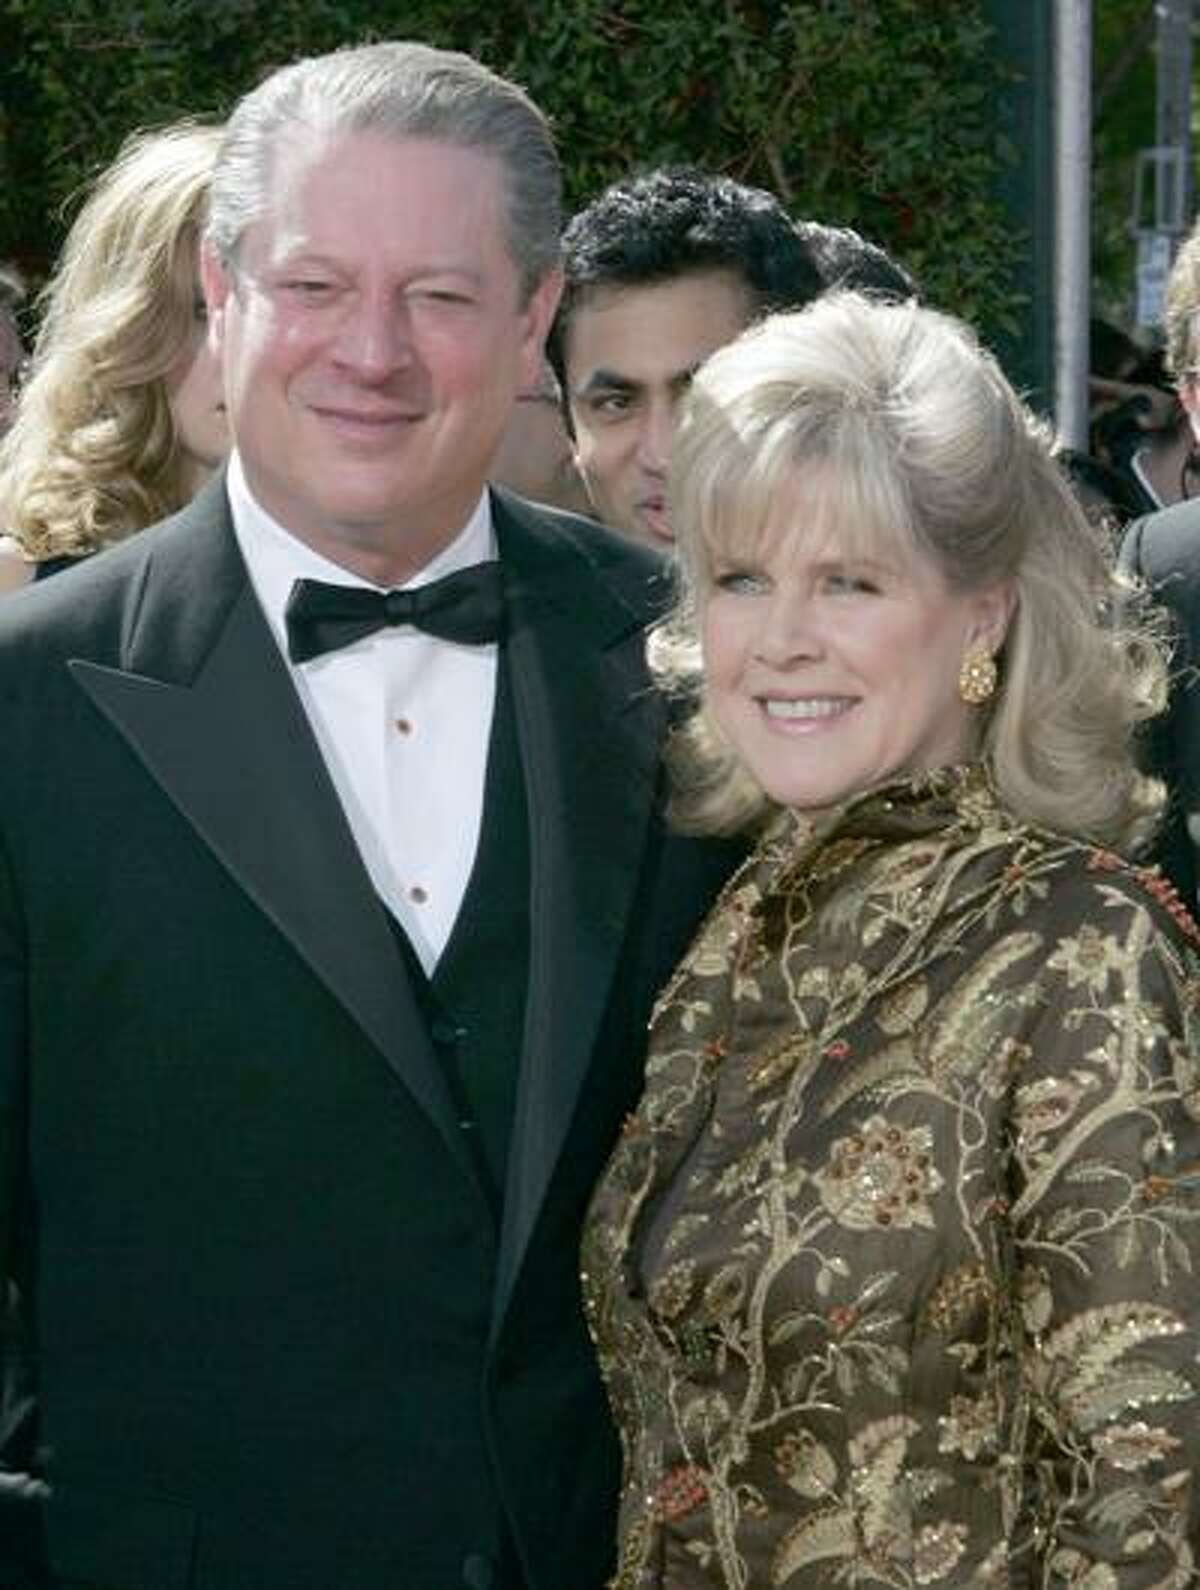 FILE - In this Sept. 16, 2007 file photo, former Vice President Al Gore and his wife, Tipper Gore arrive for the 59th Primetime Emmy Awards at the Shrine Auditorium in Los Angeles. Former Vice President Al Gore and his wife, Tipper, are separating after 40 years of marriage. (AP Photo/Chris Carlson, File)